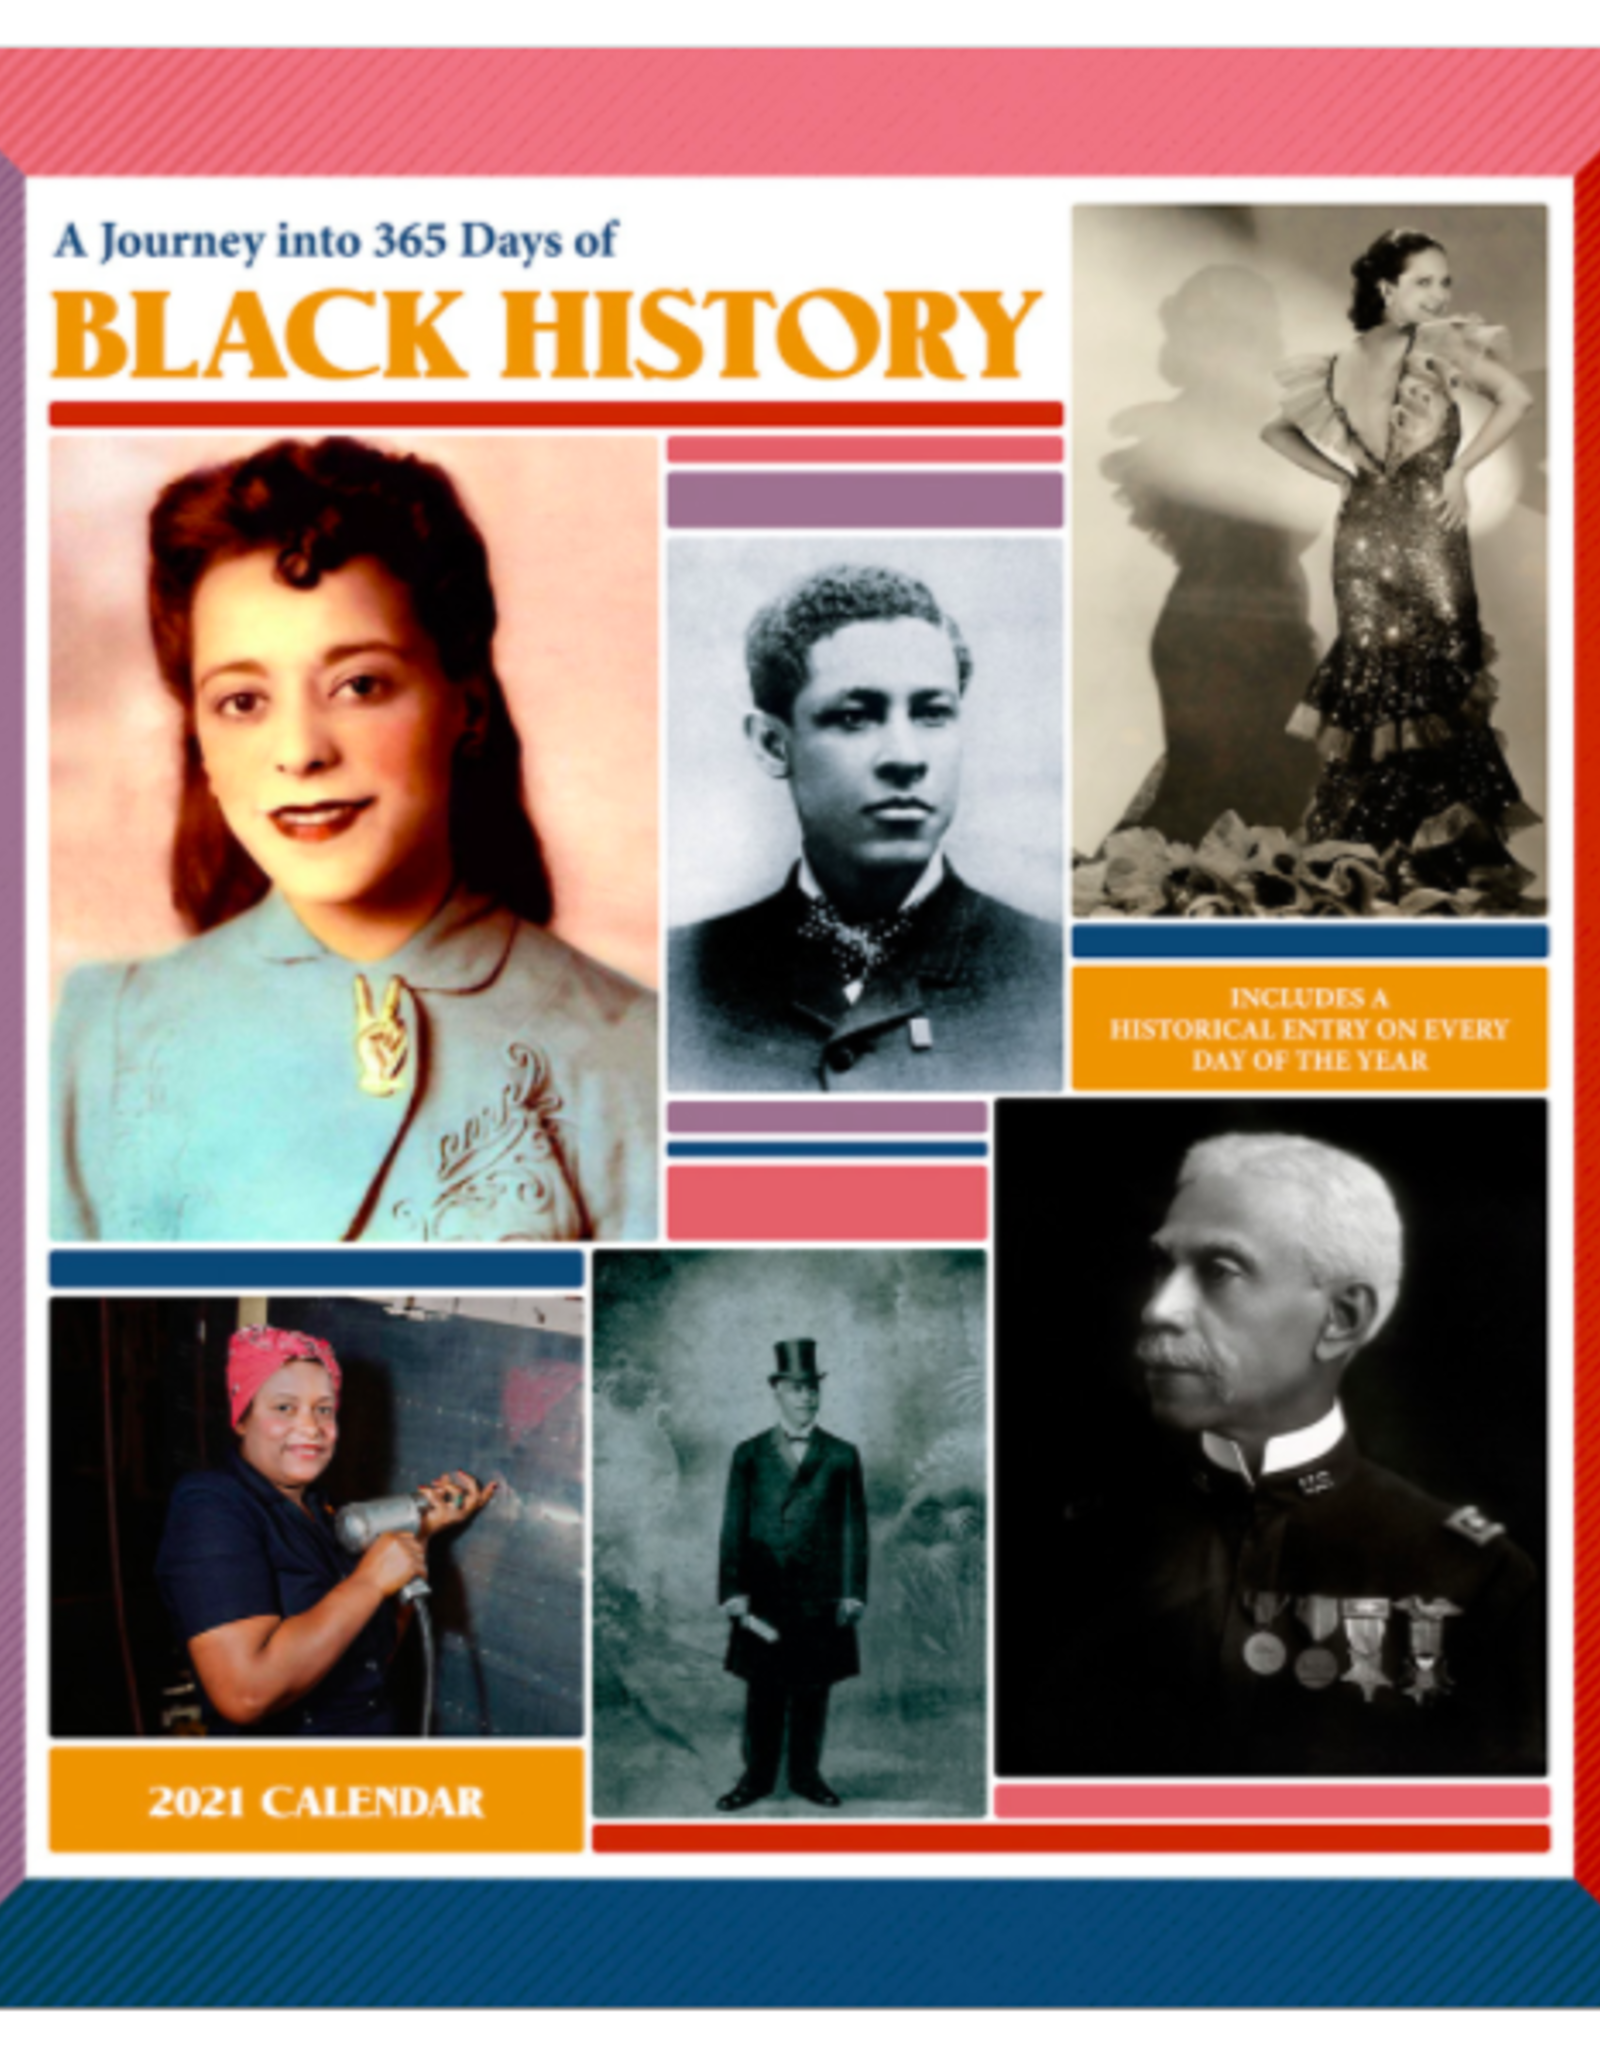 Journey into 365 Days of Black History 2021 Wall Calendar